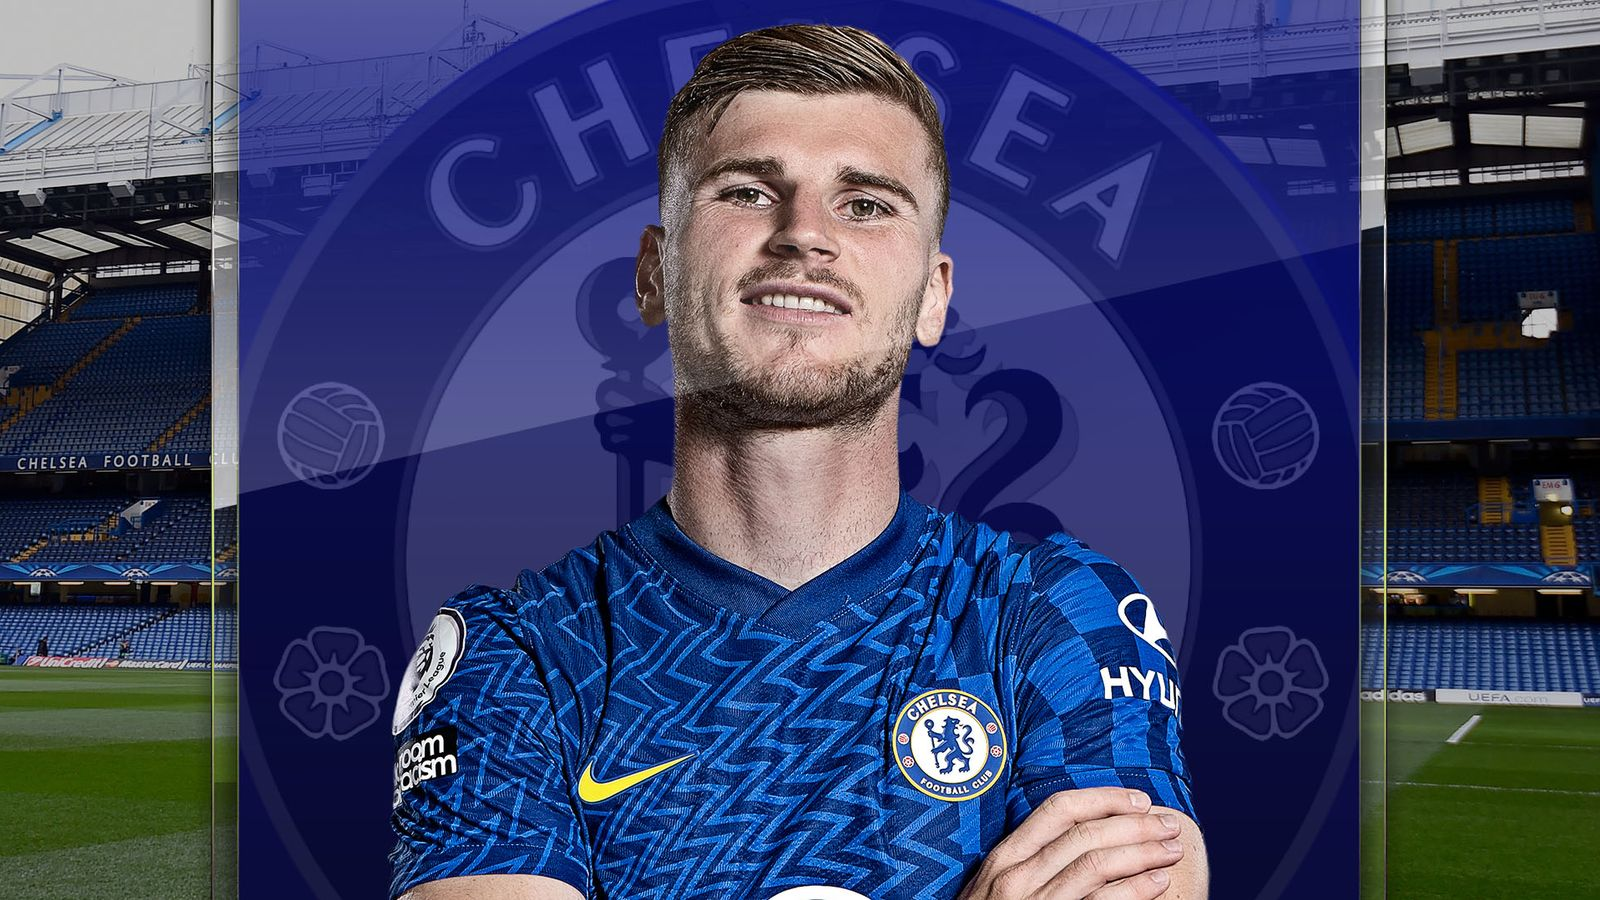 Timo Werner finds goalscoring form for Chelsea and Germany but can he put difficult year behind him?